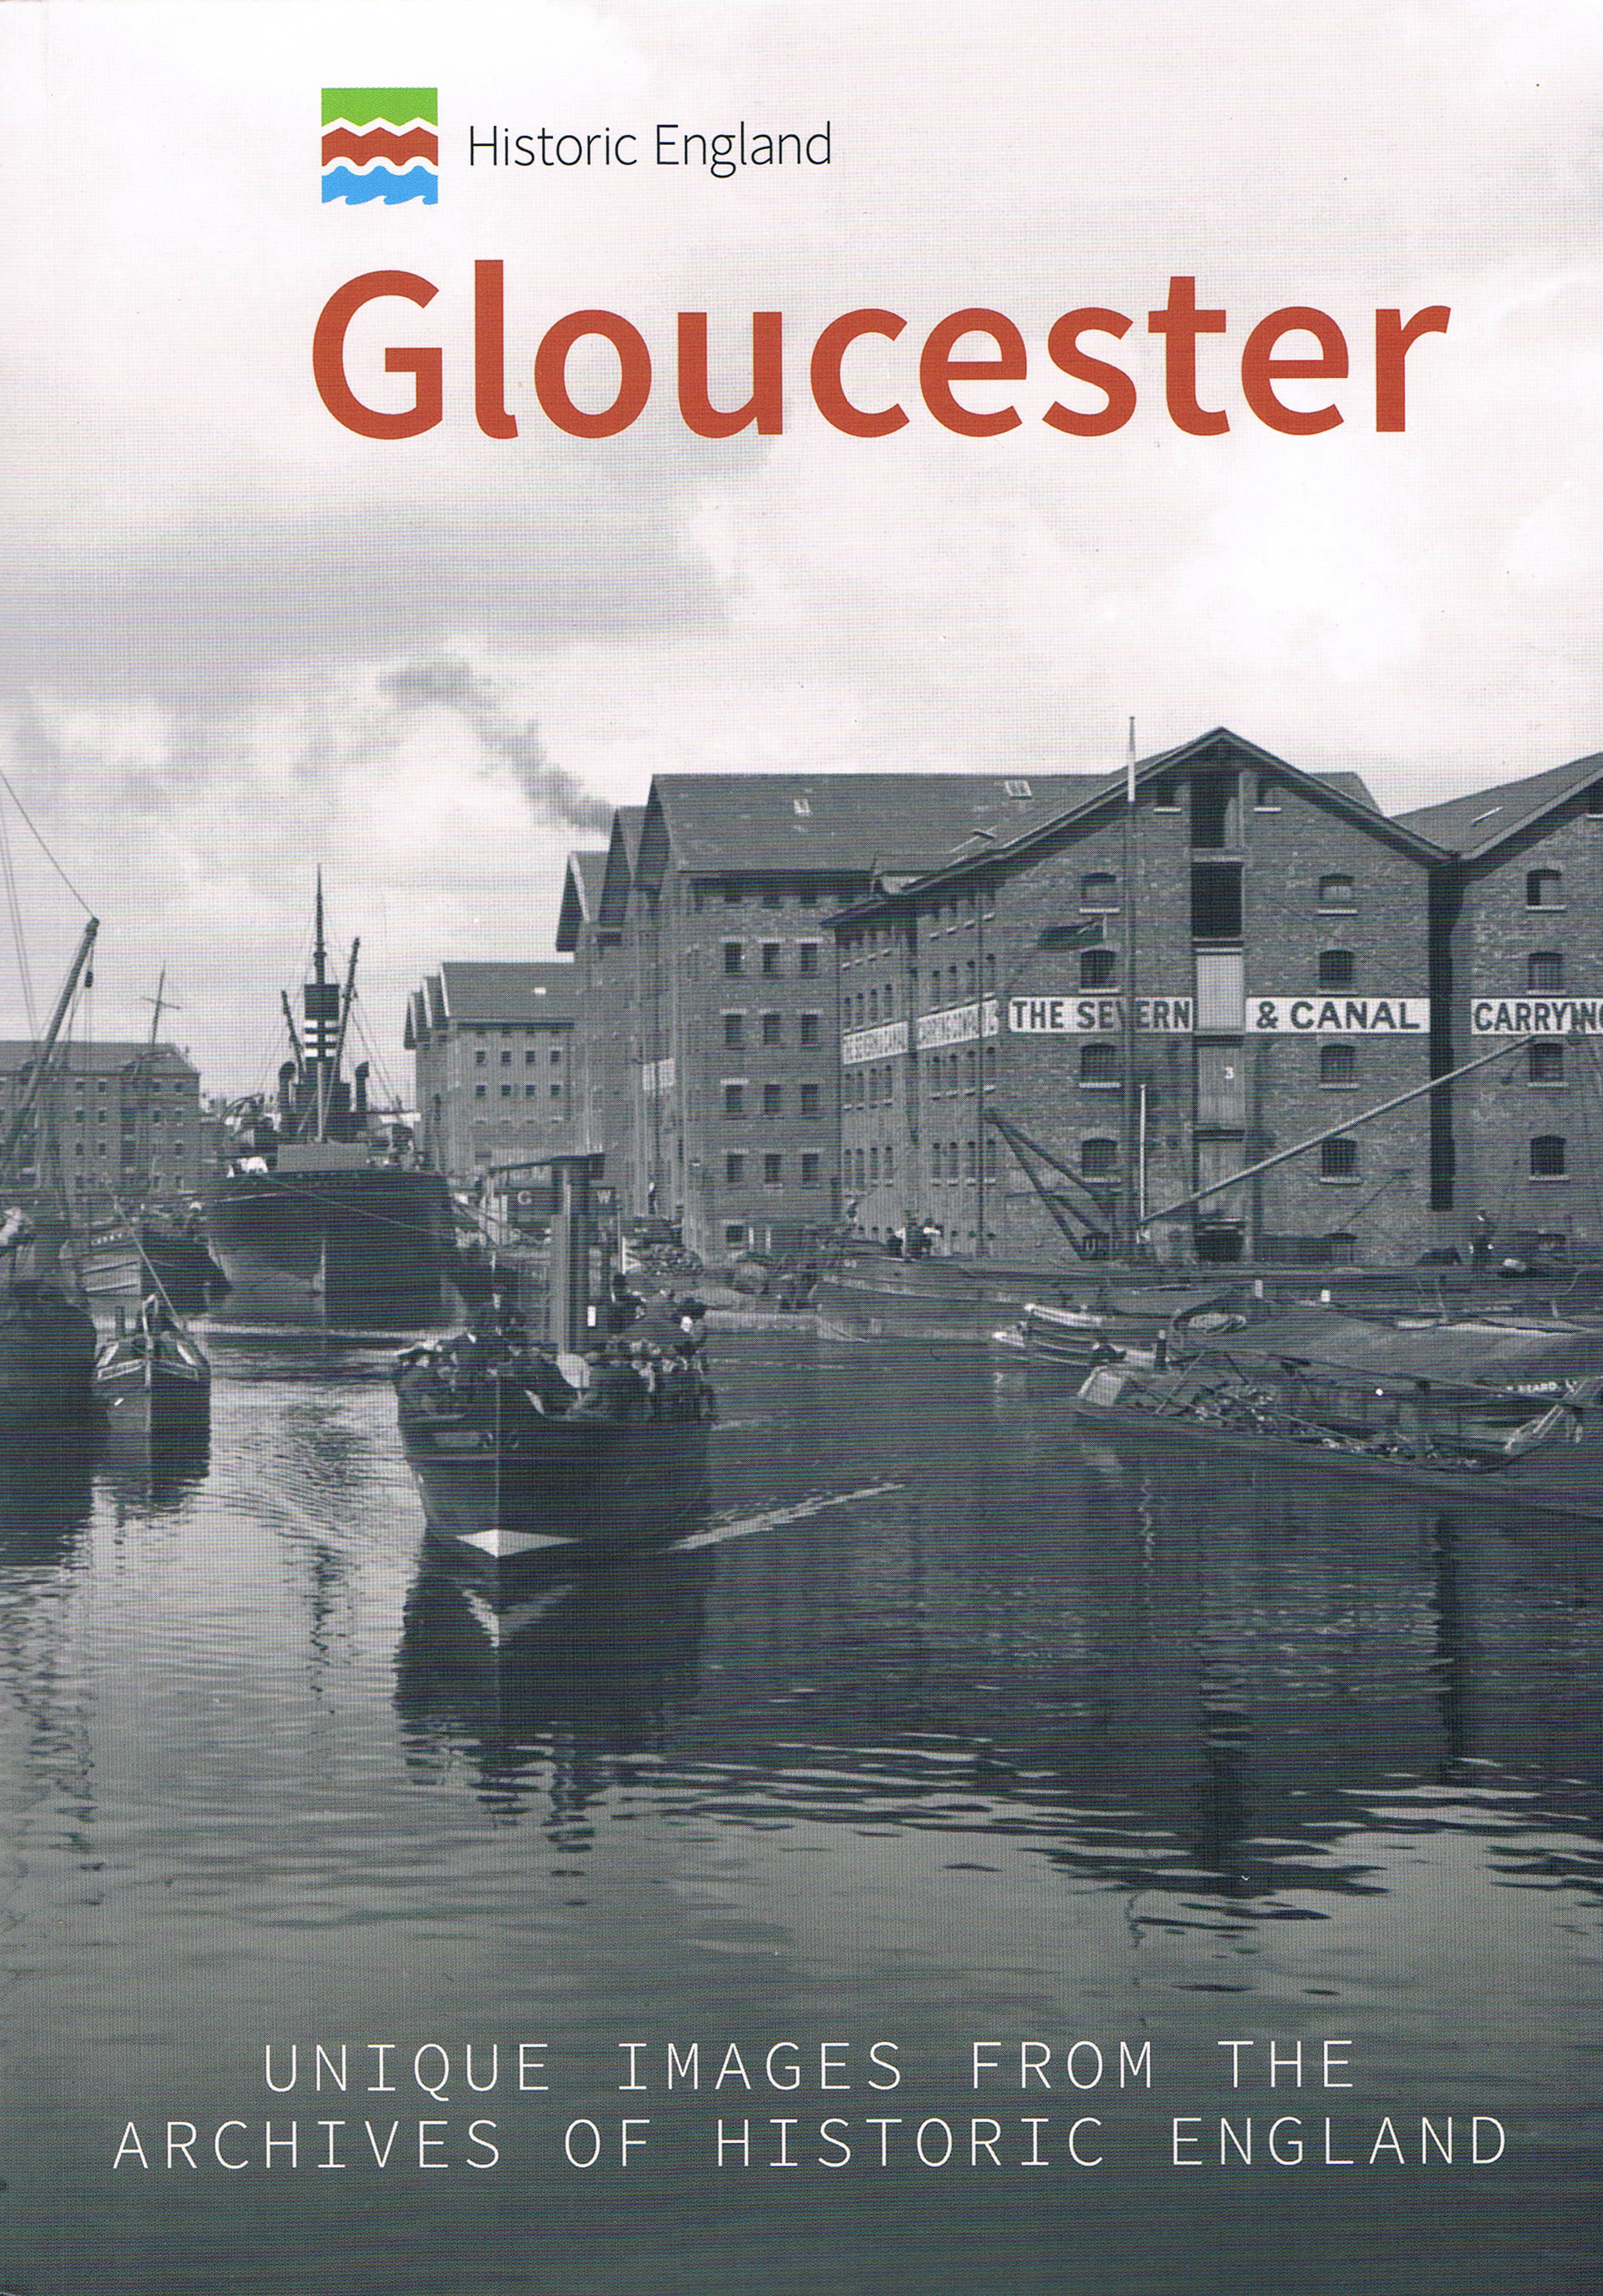 Published in June 2018 by Amberley, and also available via Amazon. Also available as an e-book.  The photographs are taken from the Historic England Archive, a unique collection of over 12 million photographs, drawings, plans and documents covering England's archaeology, architecture, social and local history. Pictures date from the earliest days of photography to the present and cover subjects from Bronze Age burials and medieval churches to cinemas and seaside resorts.